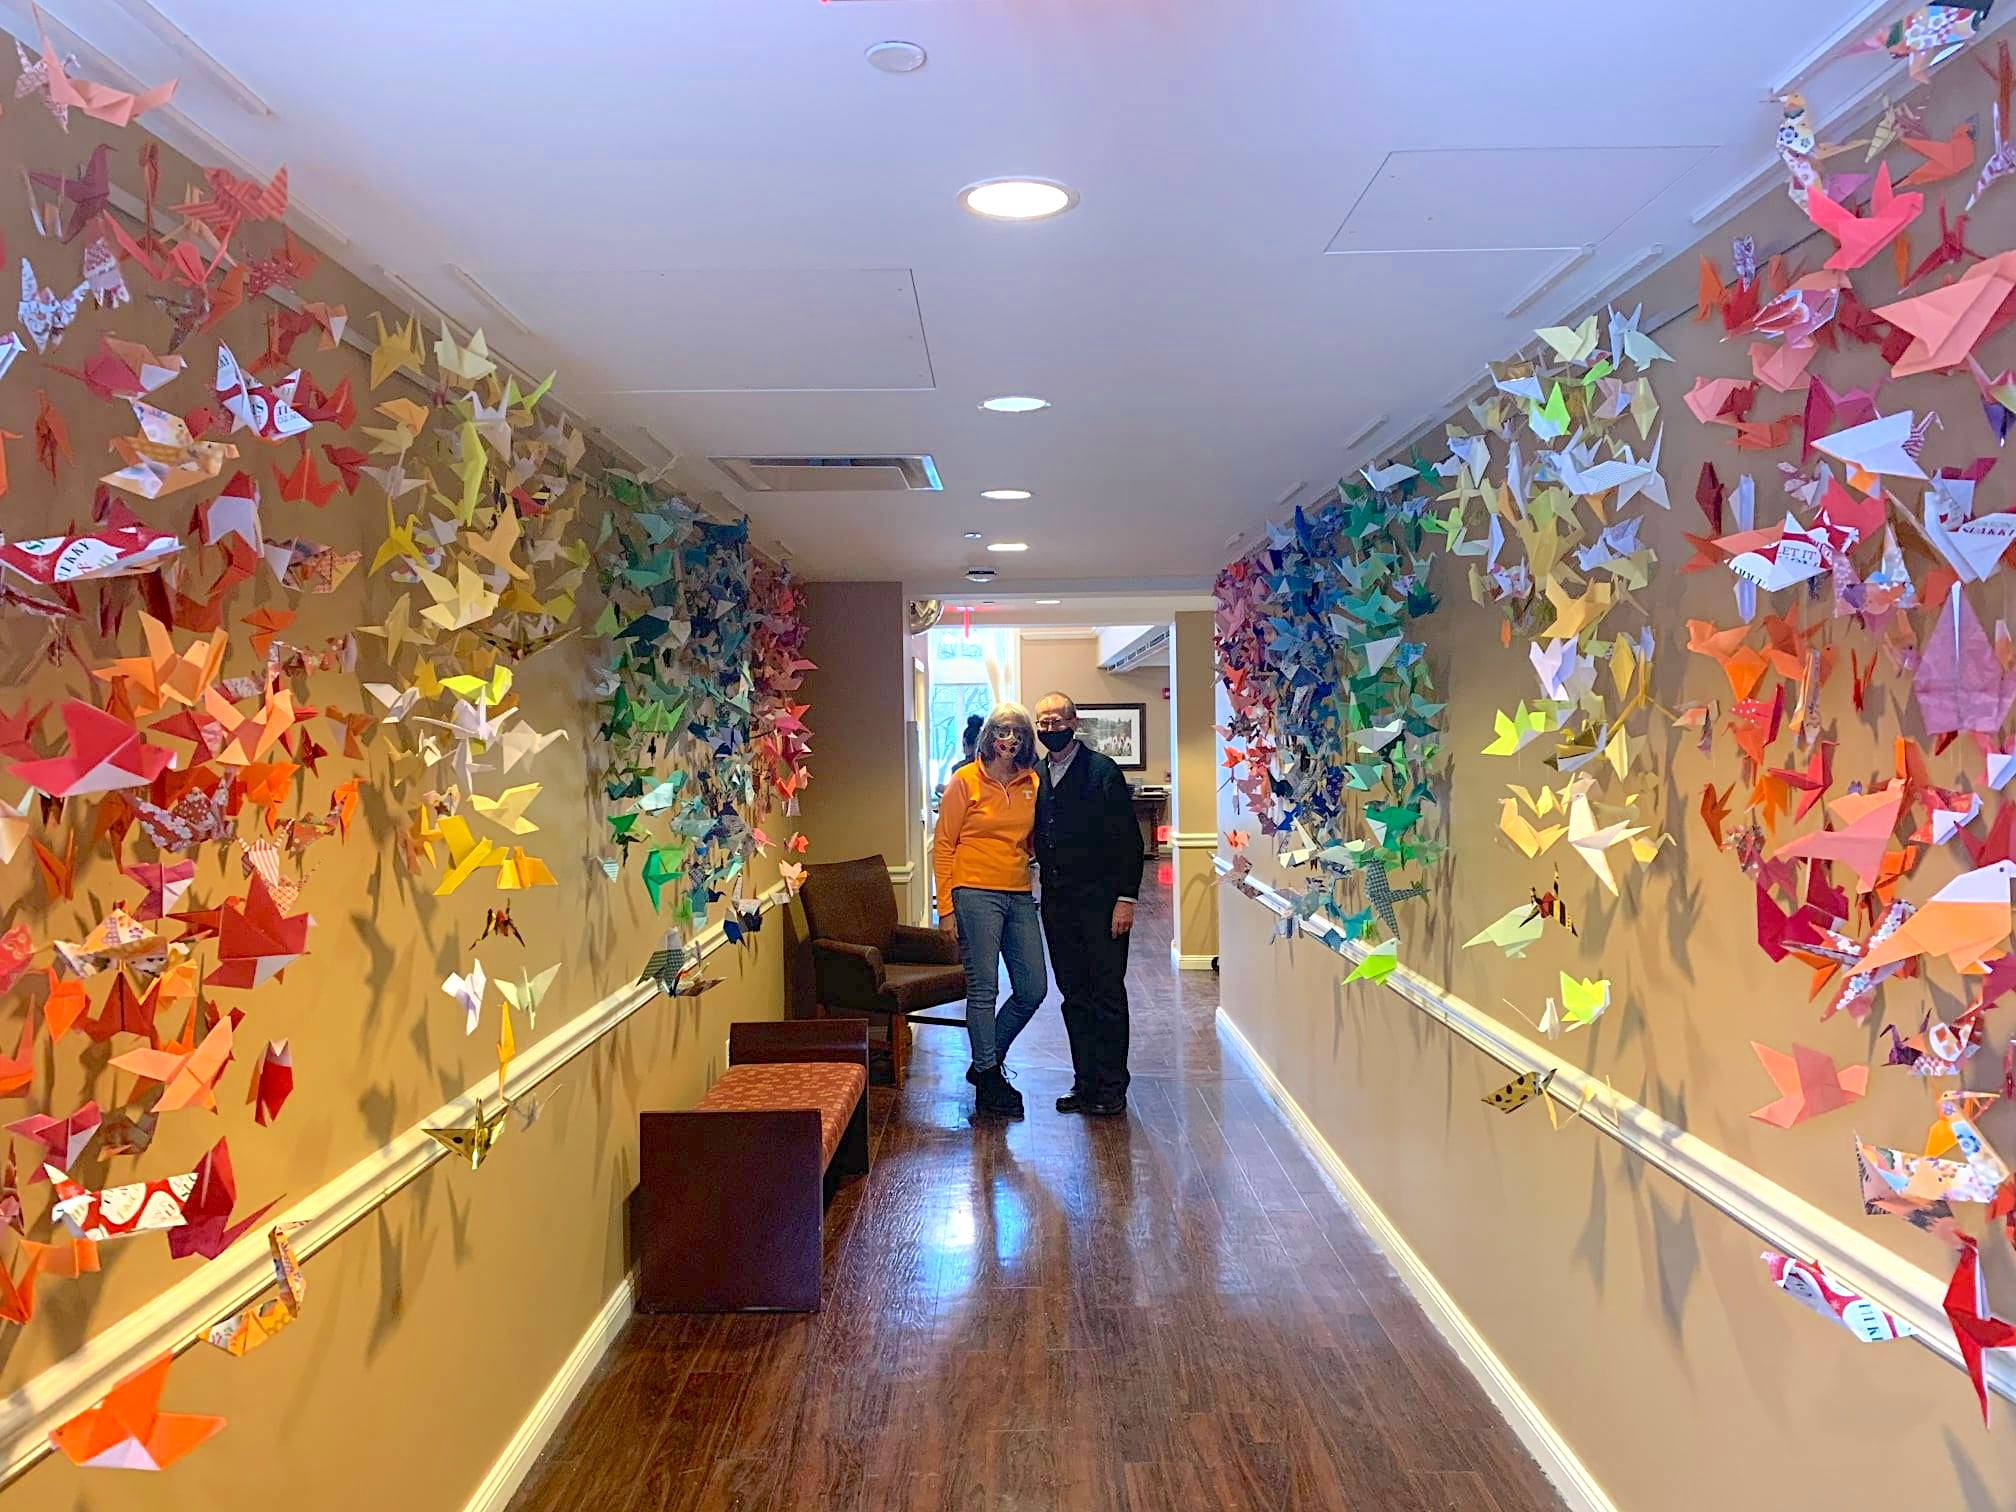 Friends of Park Place bring 'Wings of Hope' to community; Origami project builds peace and strength, one bird at a time